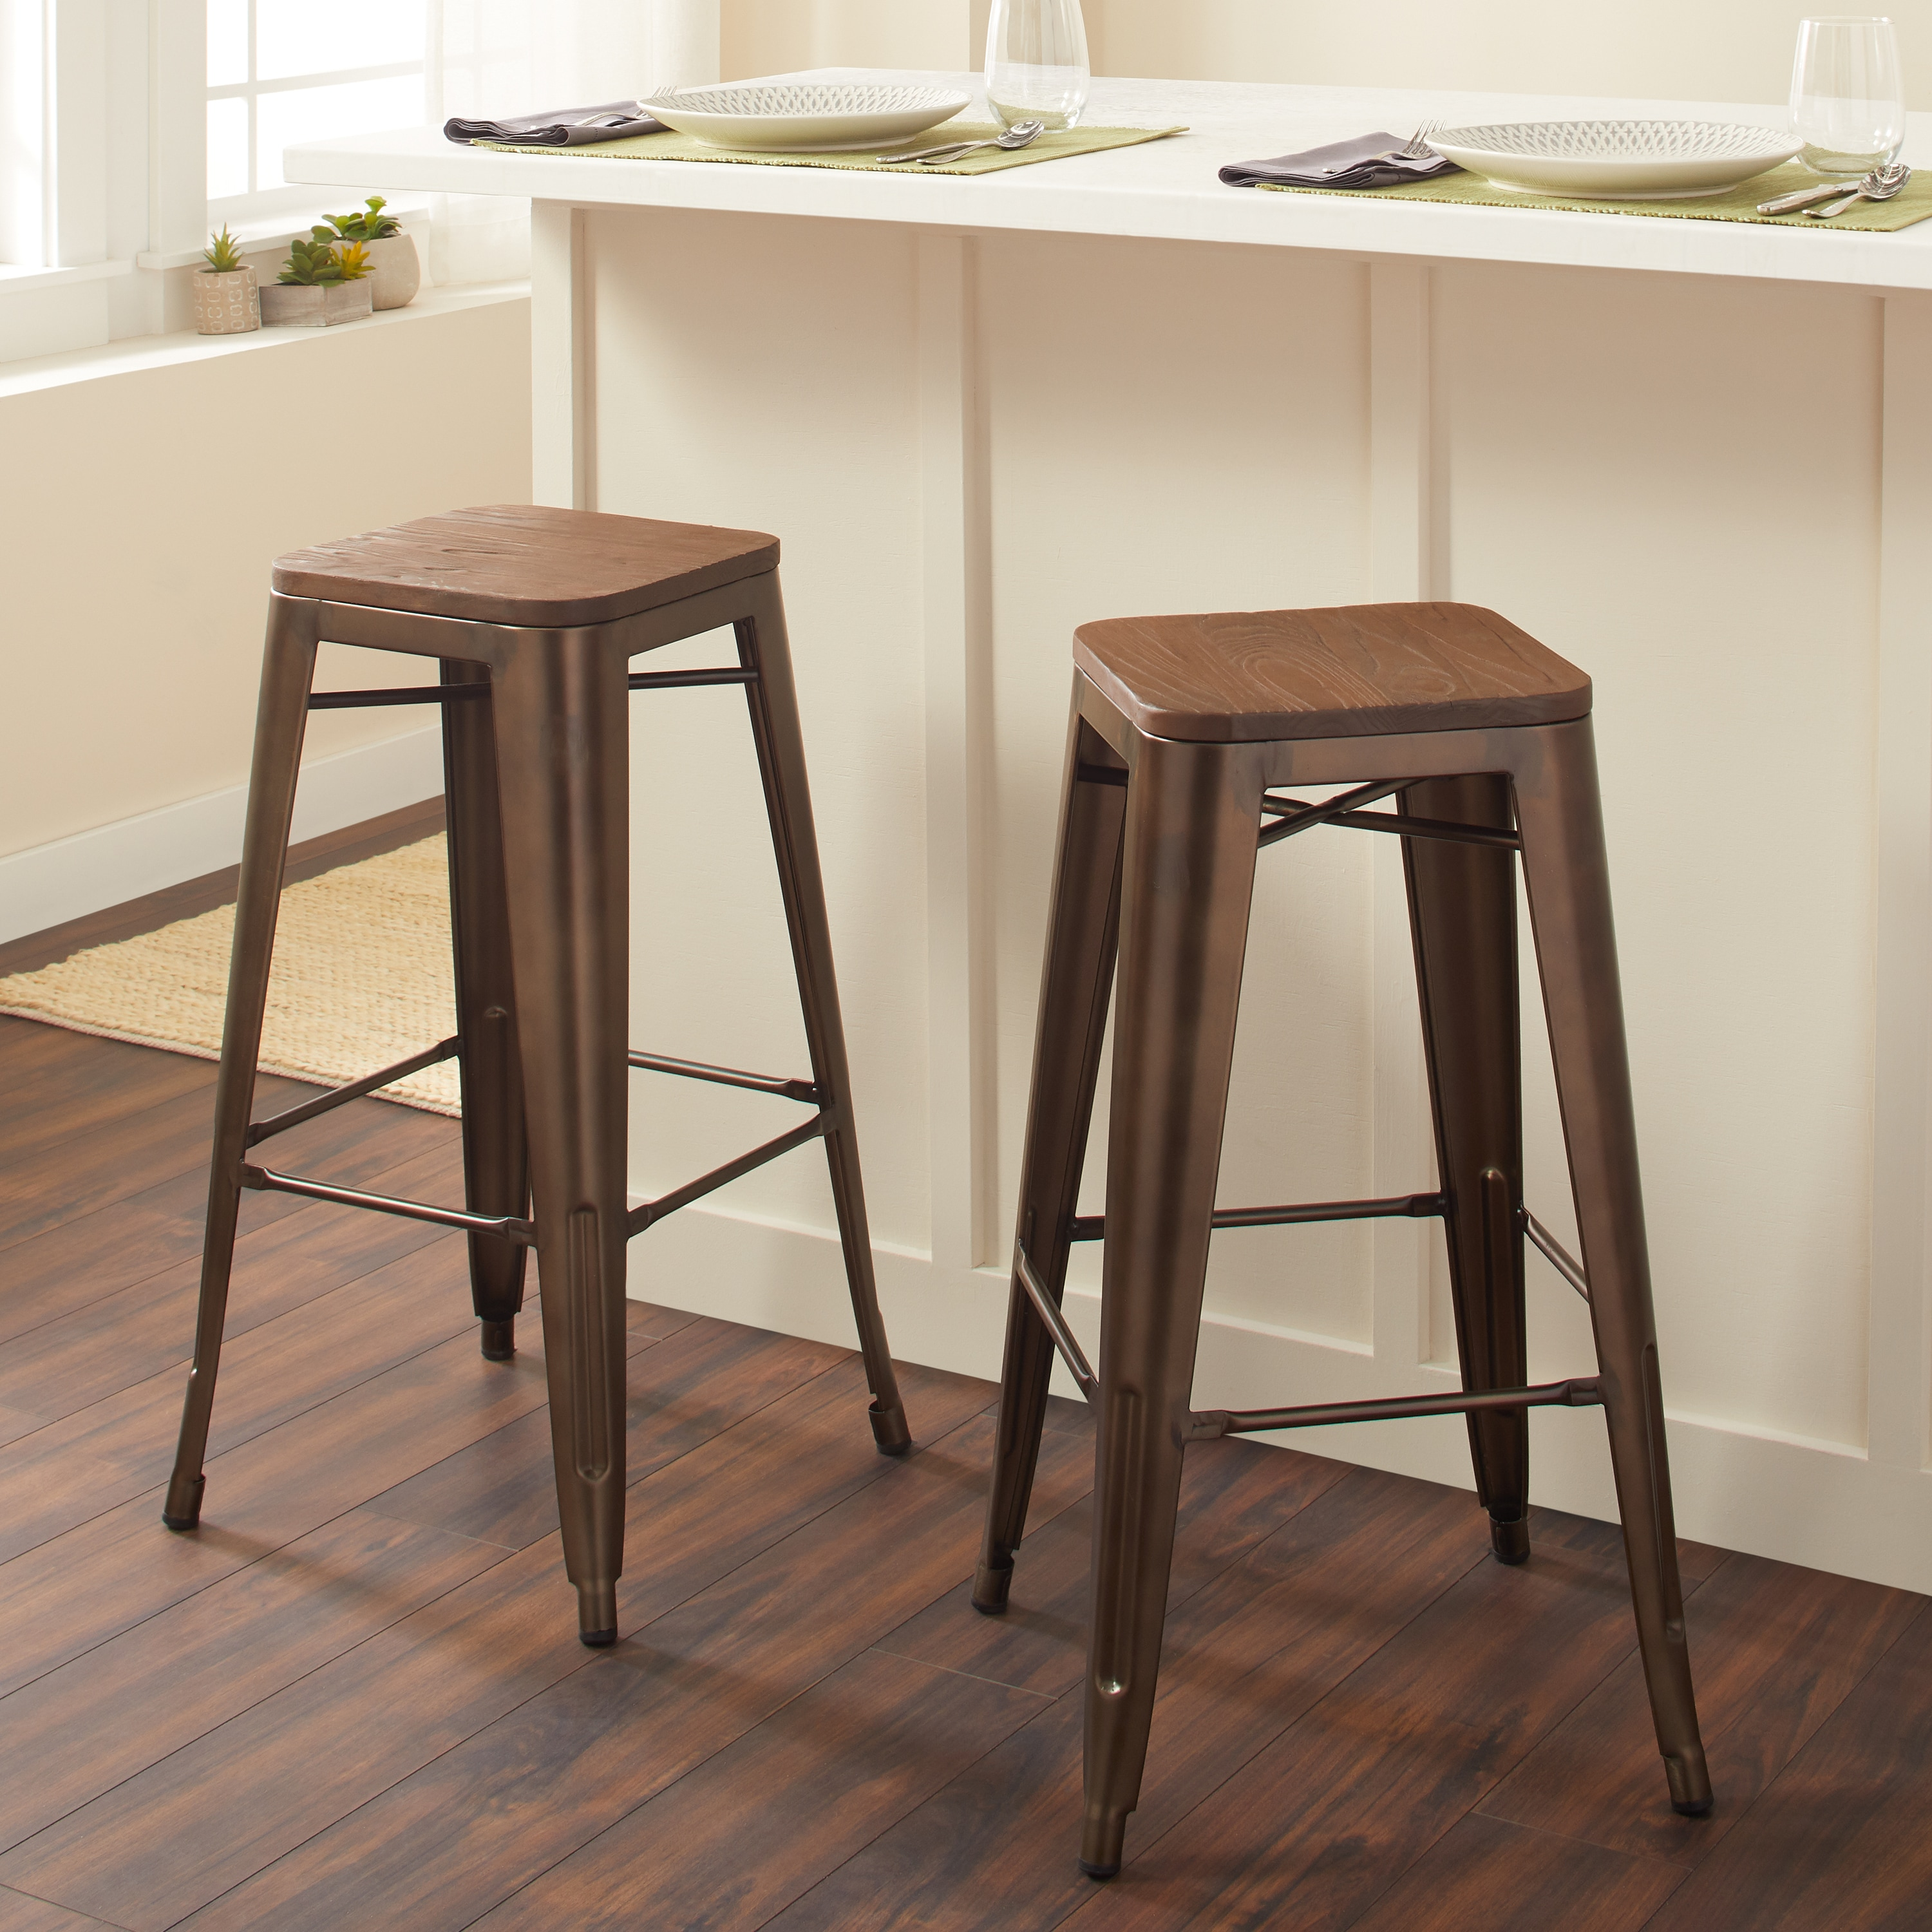 Carbon Loft Tabouret 30 Inch Vintage Wood Seat Bar Stool (Set Of 2)   Free  Shipping Today   Overstock.com   16295637